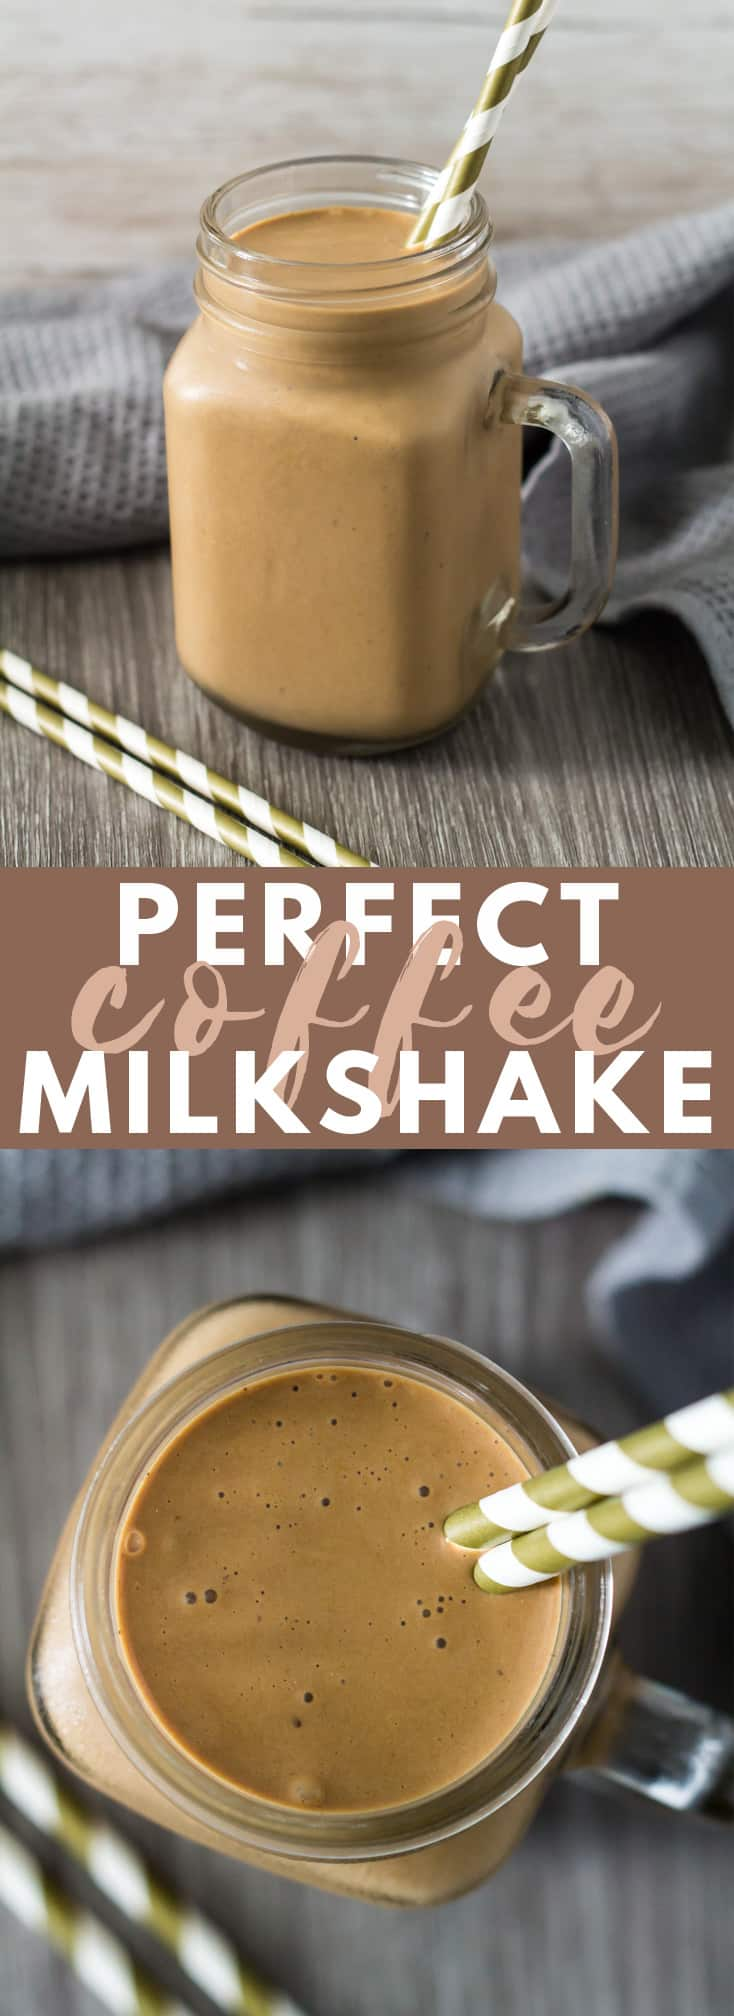 Perfect Coffee Milkshake - This milkshake is deliciously thick, loaded with flavour, and is made with only 4 simple ingredients. The BEST coffee milkshake you'll ever try! #coffee #milkshake #recipe